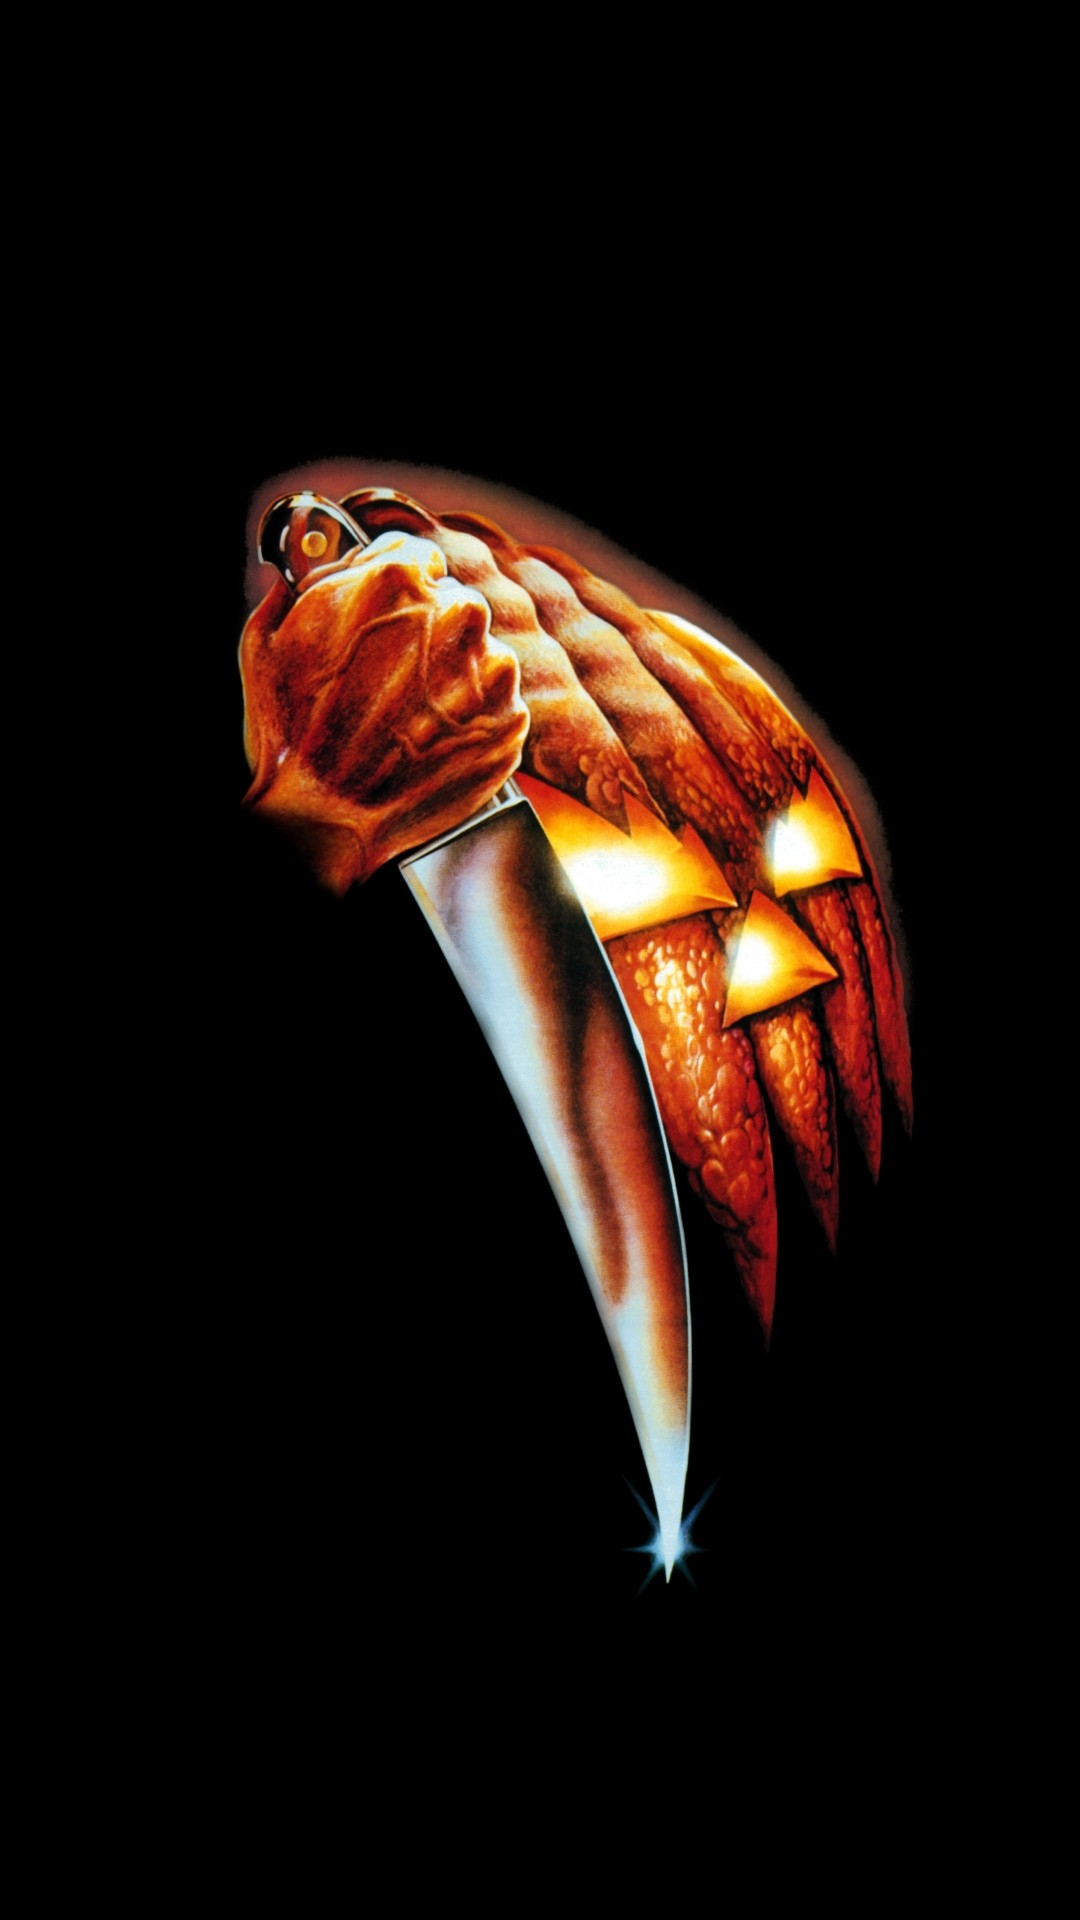 Horror movies wallpaper iphone 44 images - Scary wallpaper iphone ...